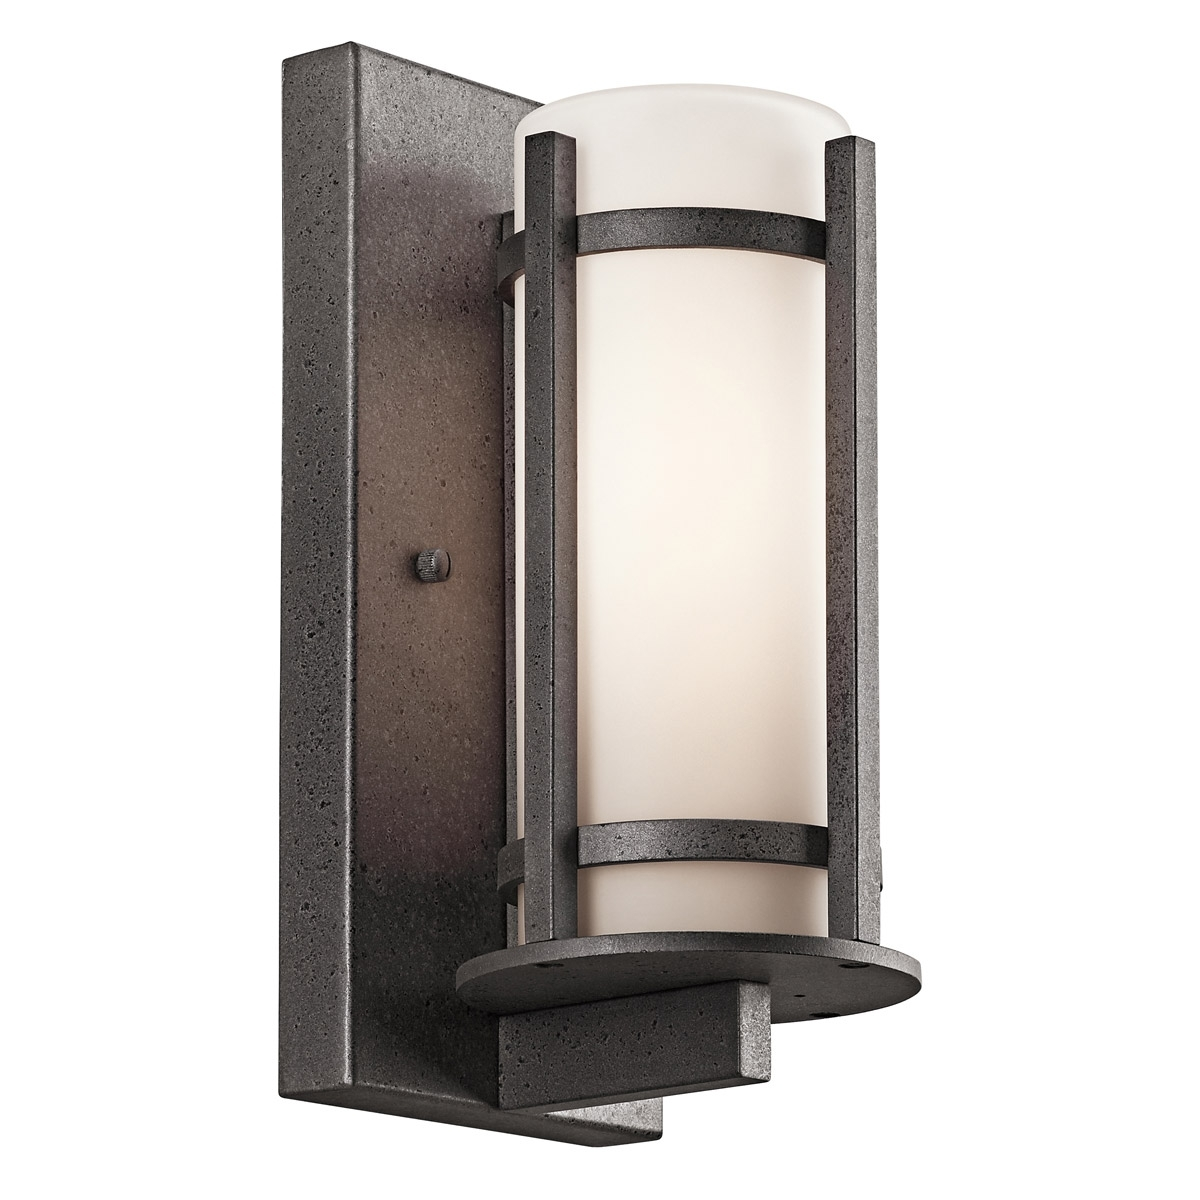 49119Avi Camden Outdoor Wall Sconce Inside Kichler Outdoor Lighting Wall Sconces (View 8 of 15)